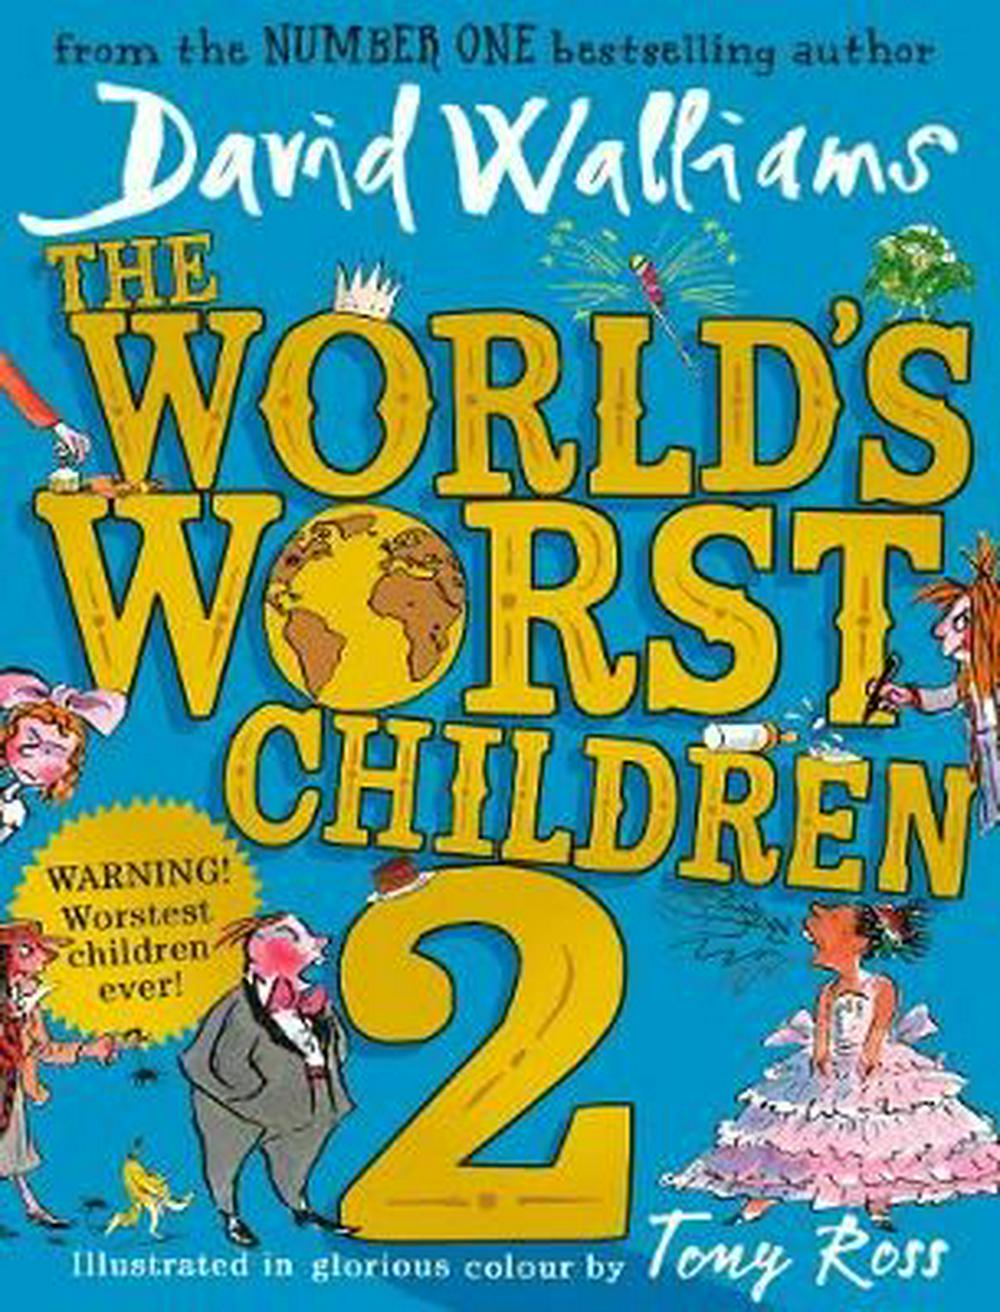 The World's Worst Children 2 by David Walliams,Tony Ross, ISBN: 9780008259679